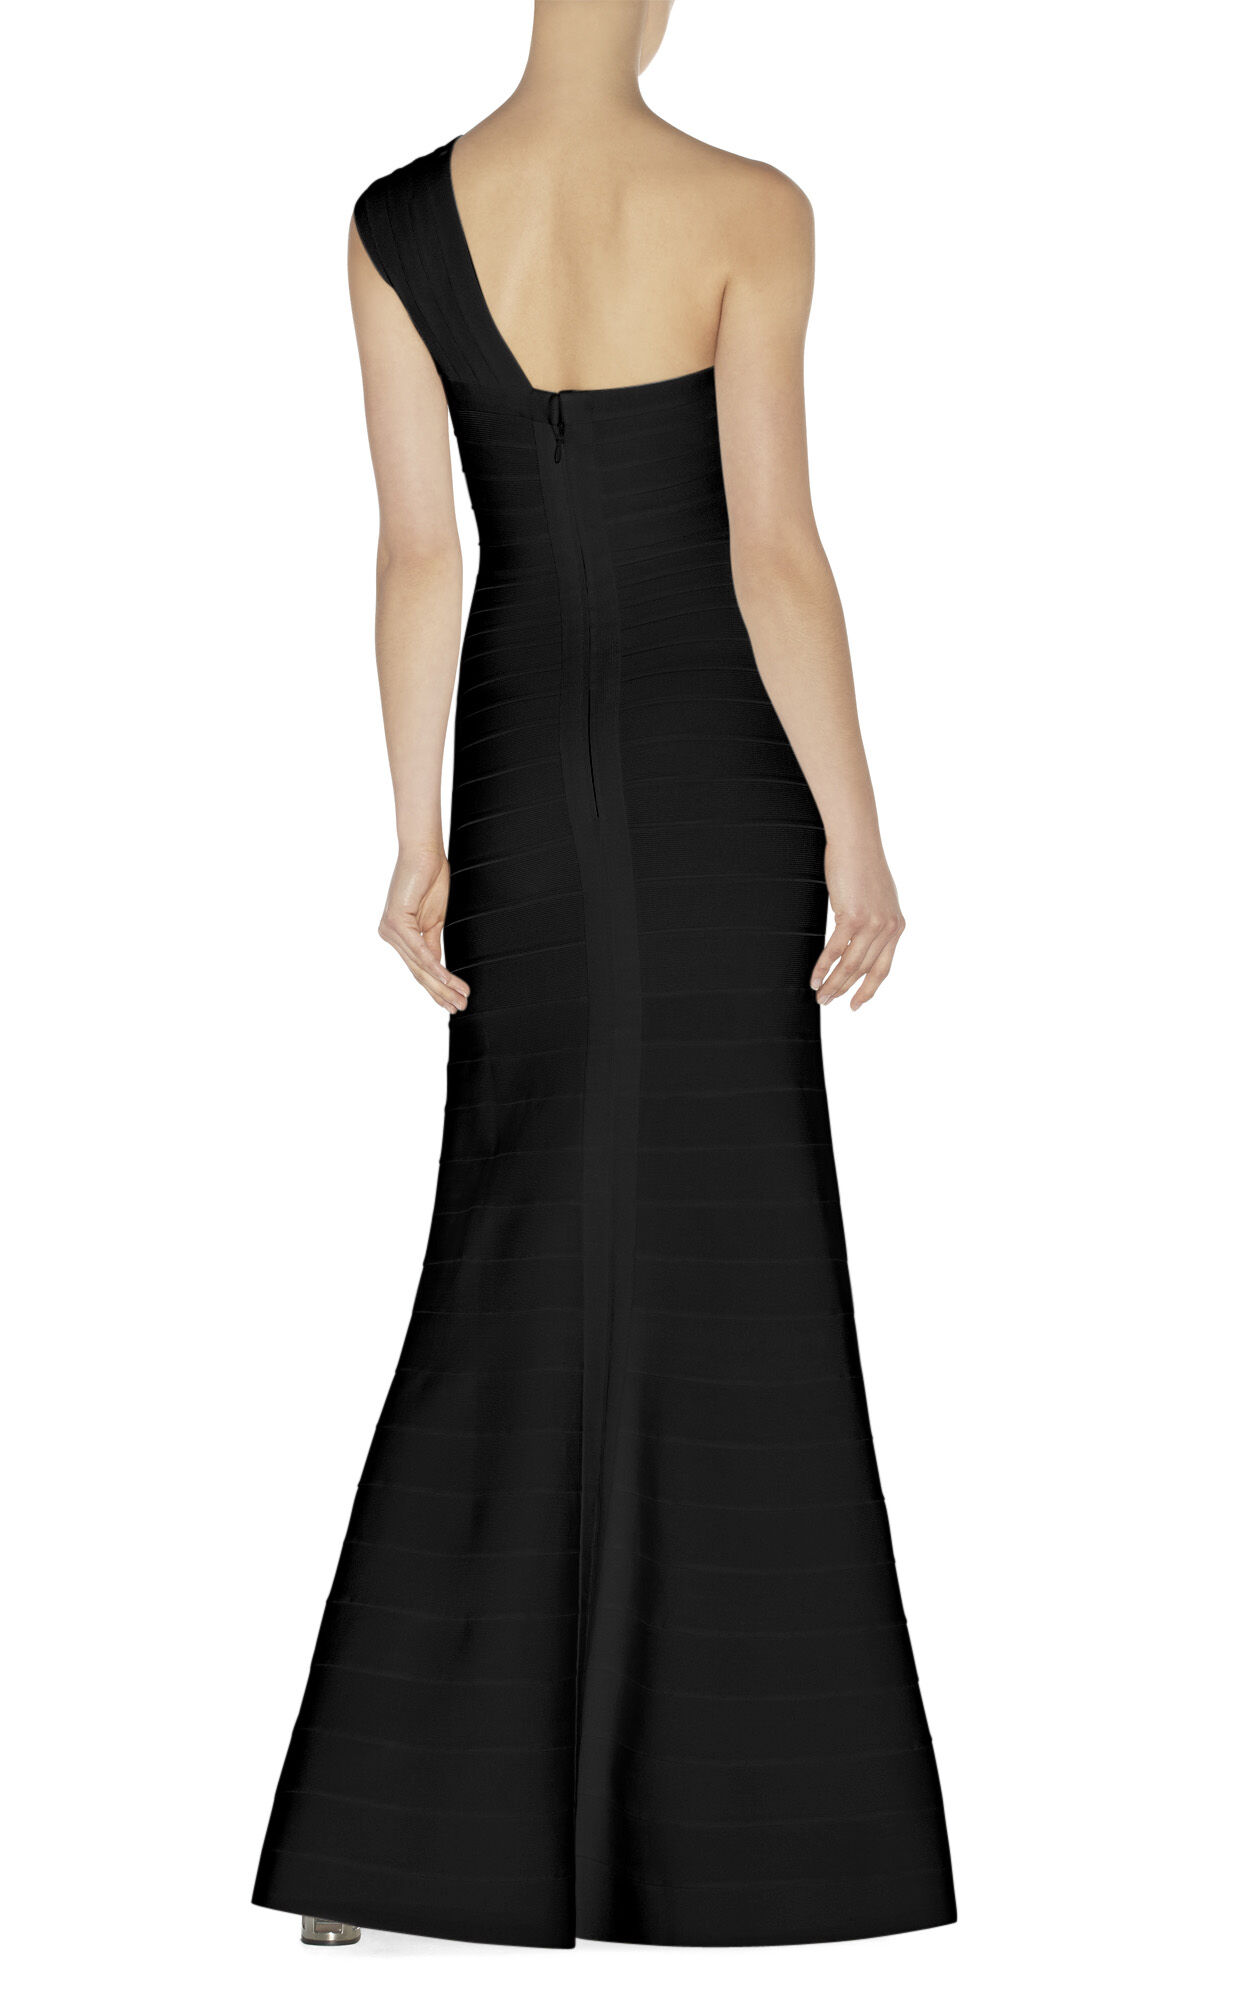 Elena Signature Essential Dress